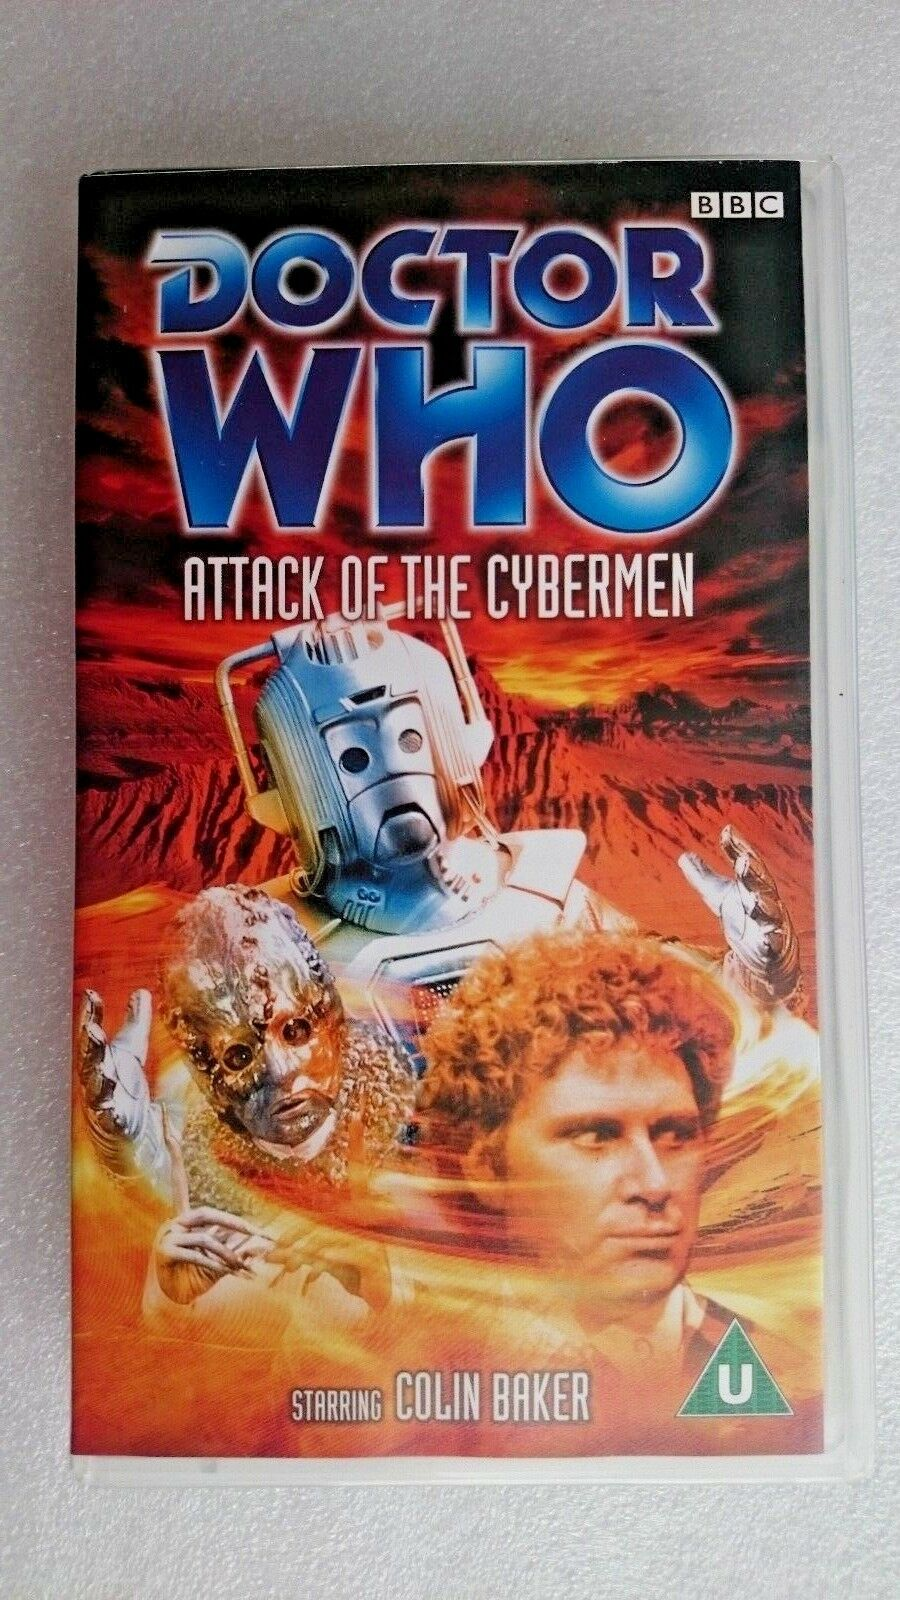 Doctor Who Attack of the Cybermen Colin Baker (VHS 2000)